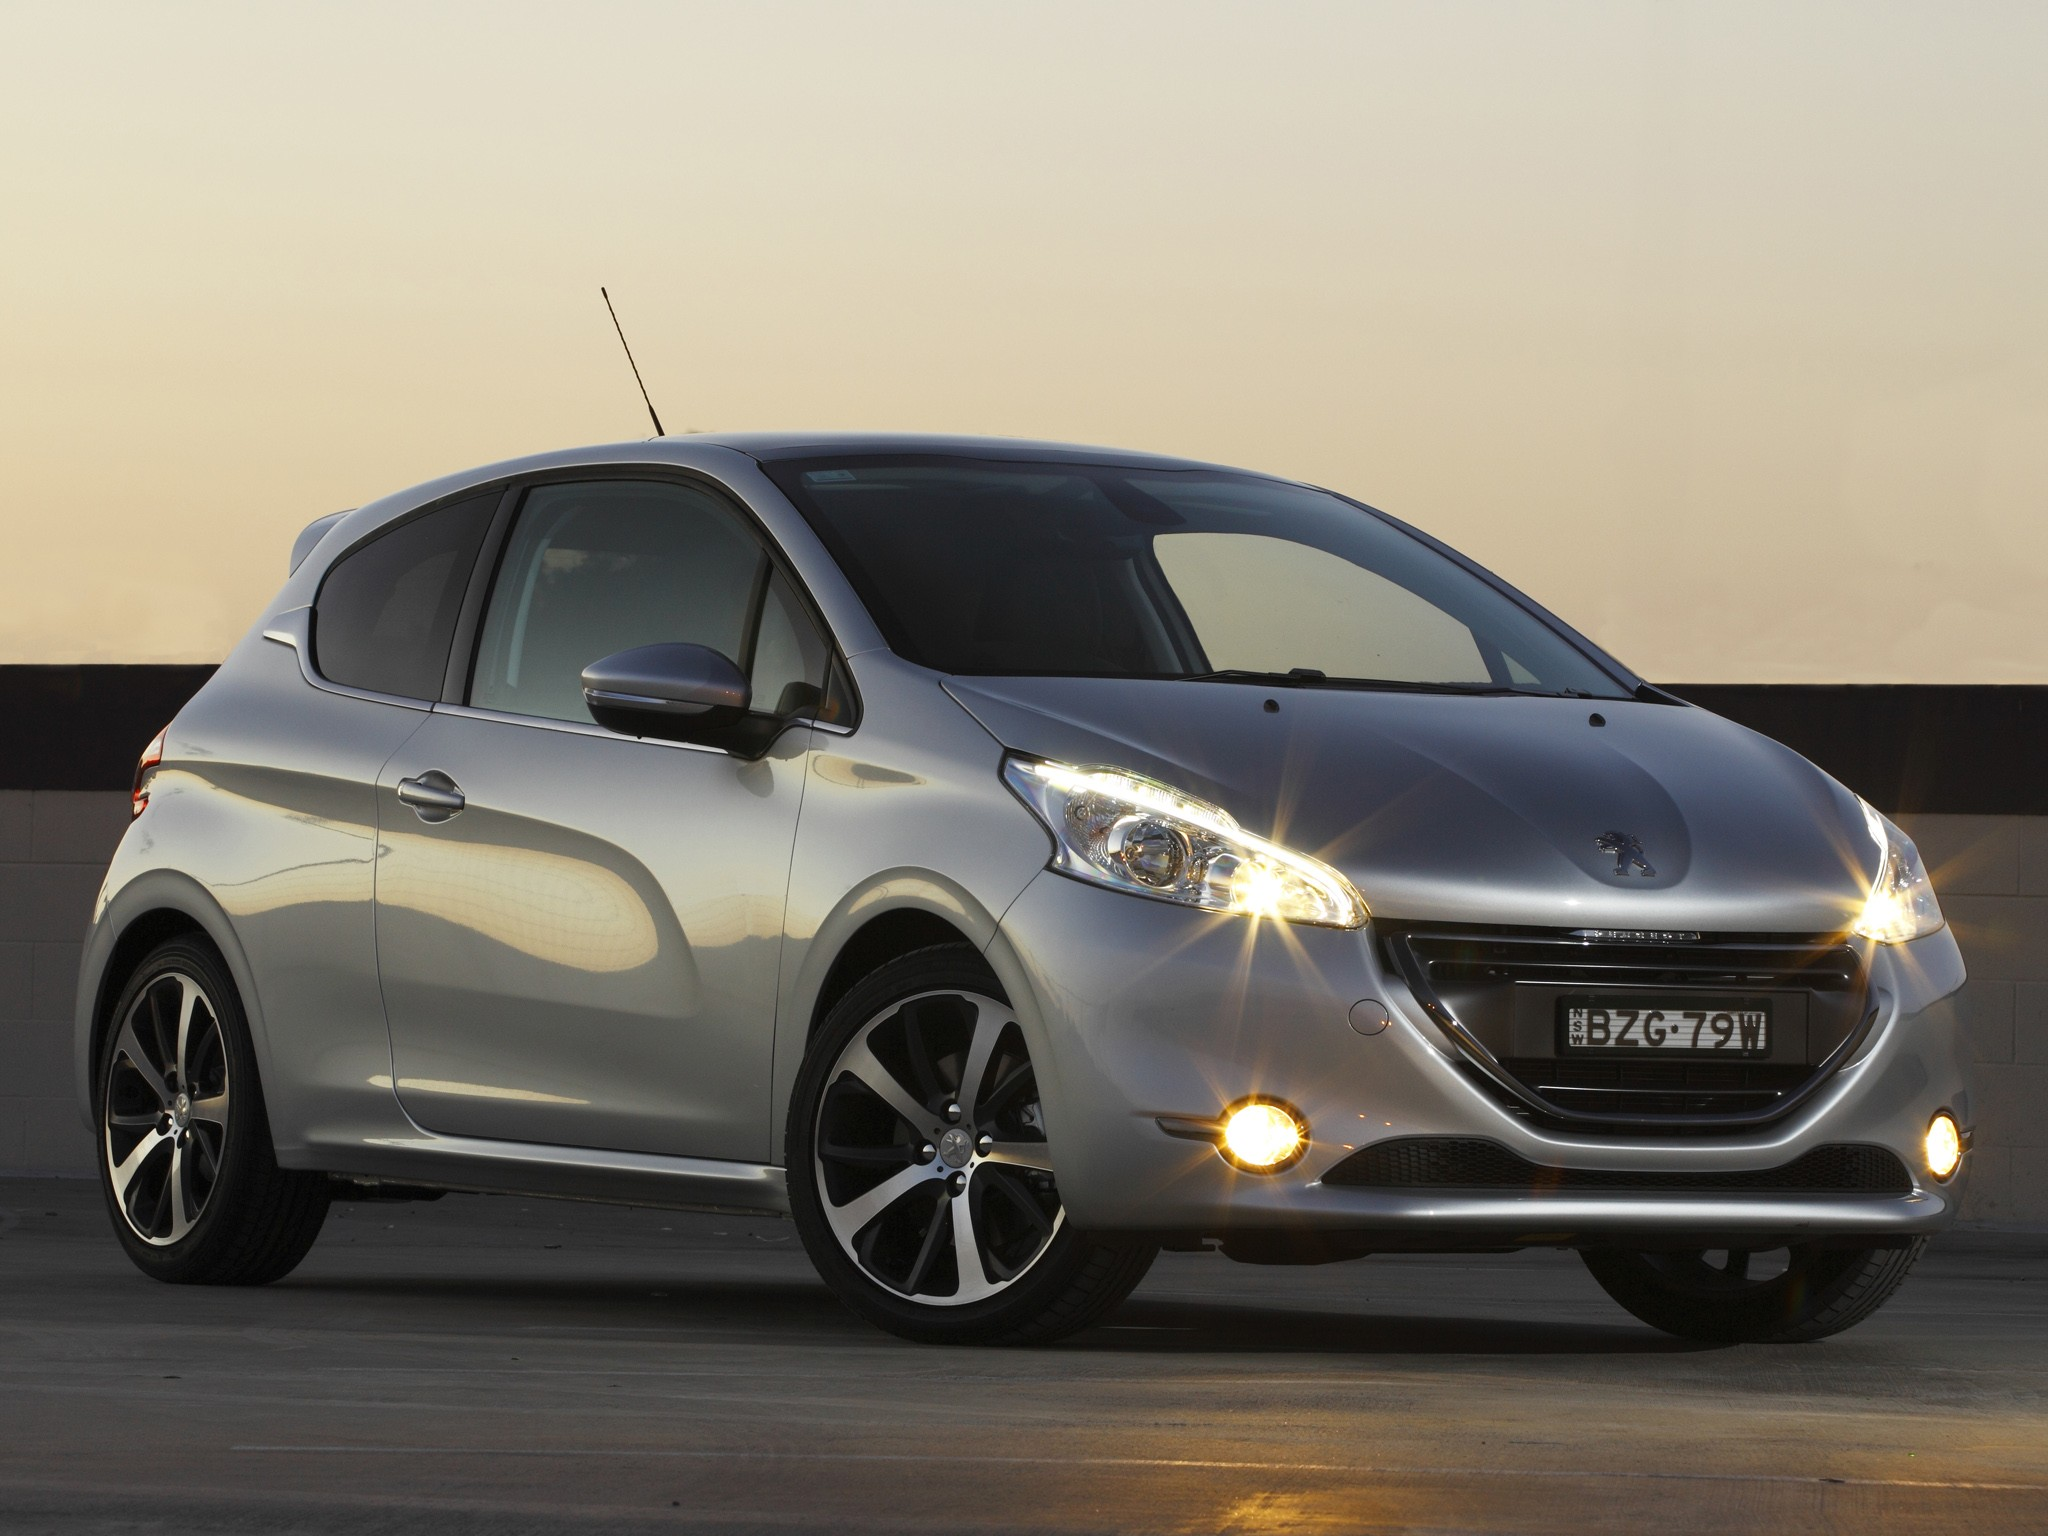 peugeot 208 3 doors specs 2012 2013 2014 2015 2016 2017 2018 autoevolution. Black Bedroom Furniture Sets. Home Design Ideas